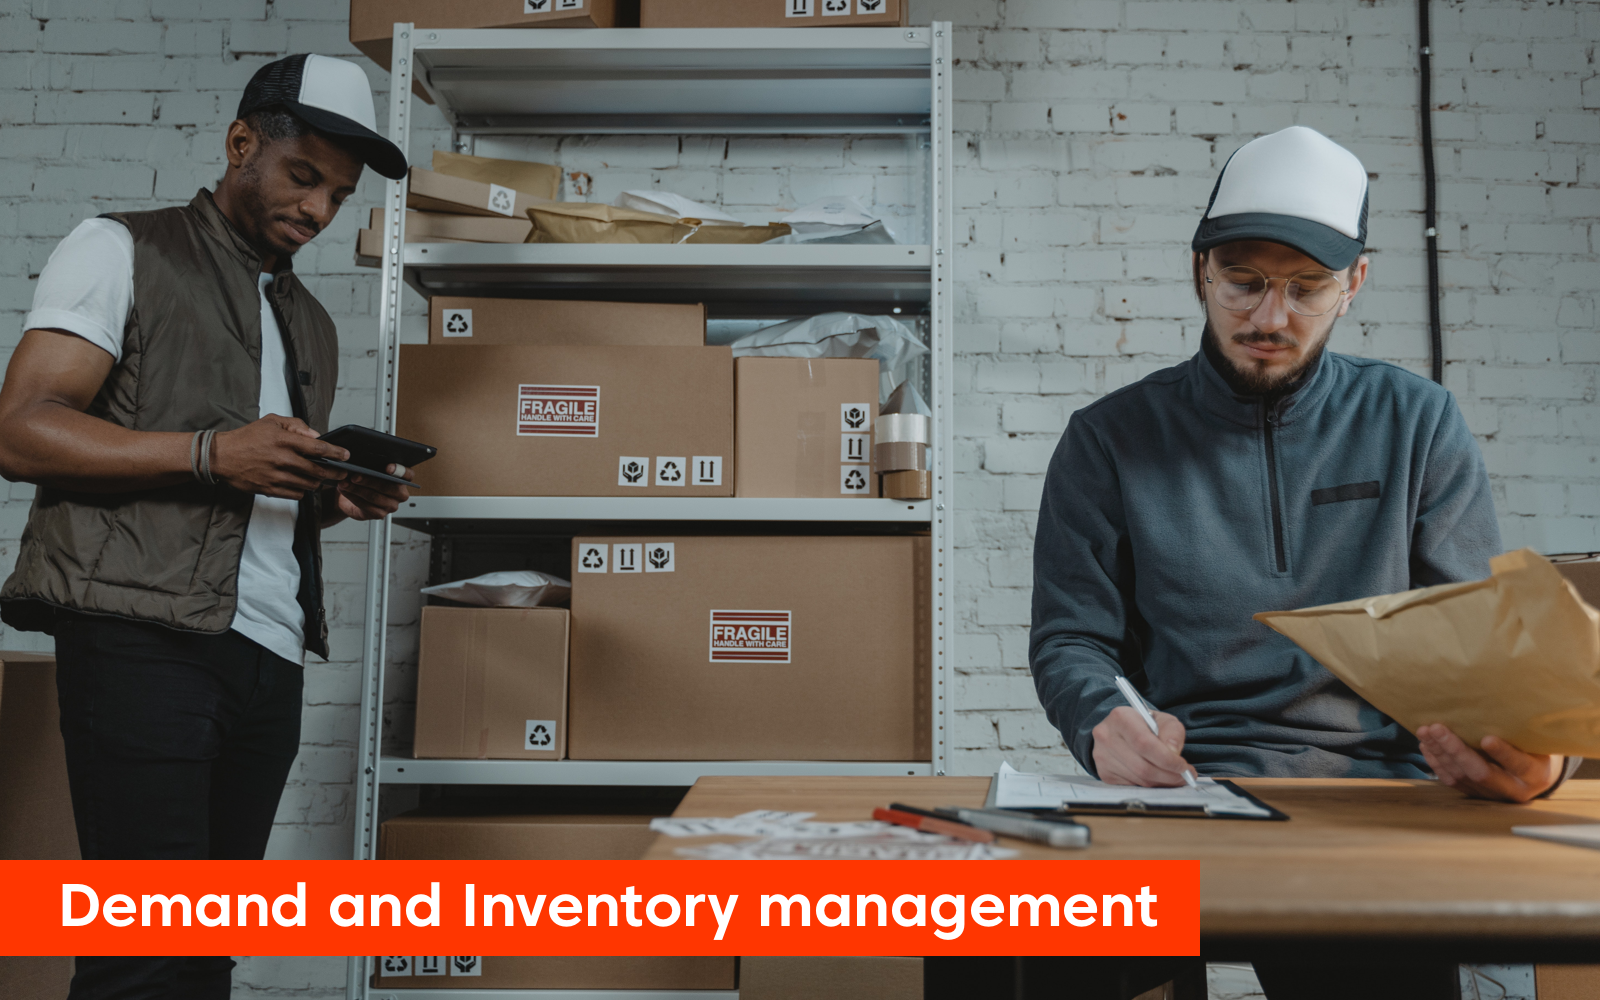 Demand and Inventory management - Role of Business Intelligence in Supply Chain